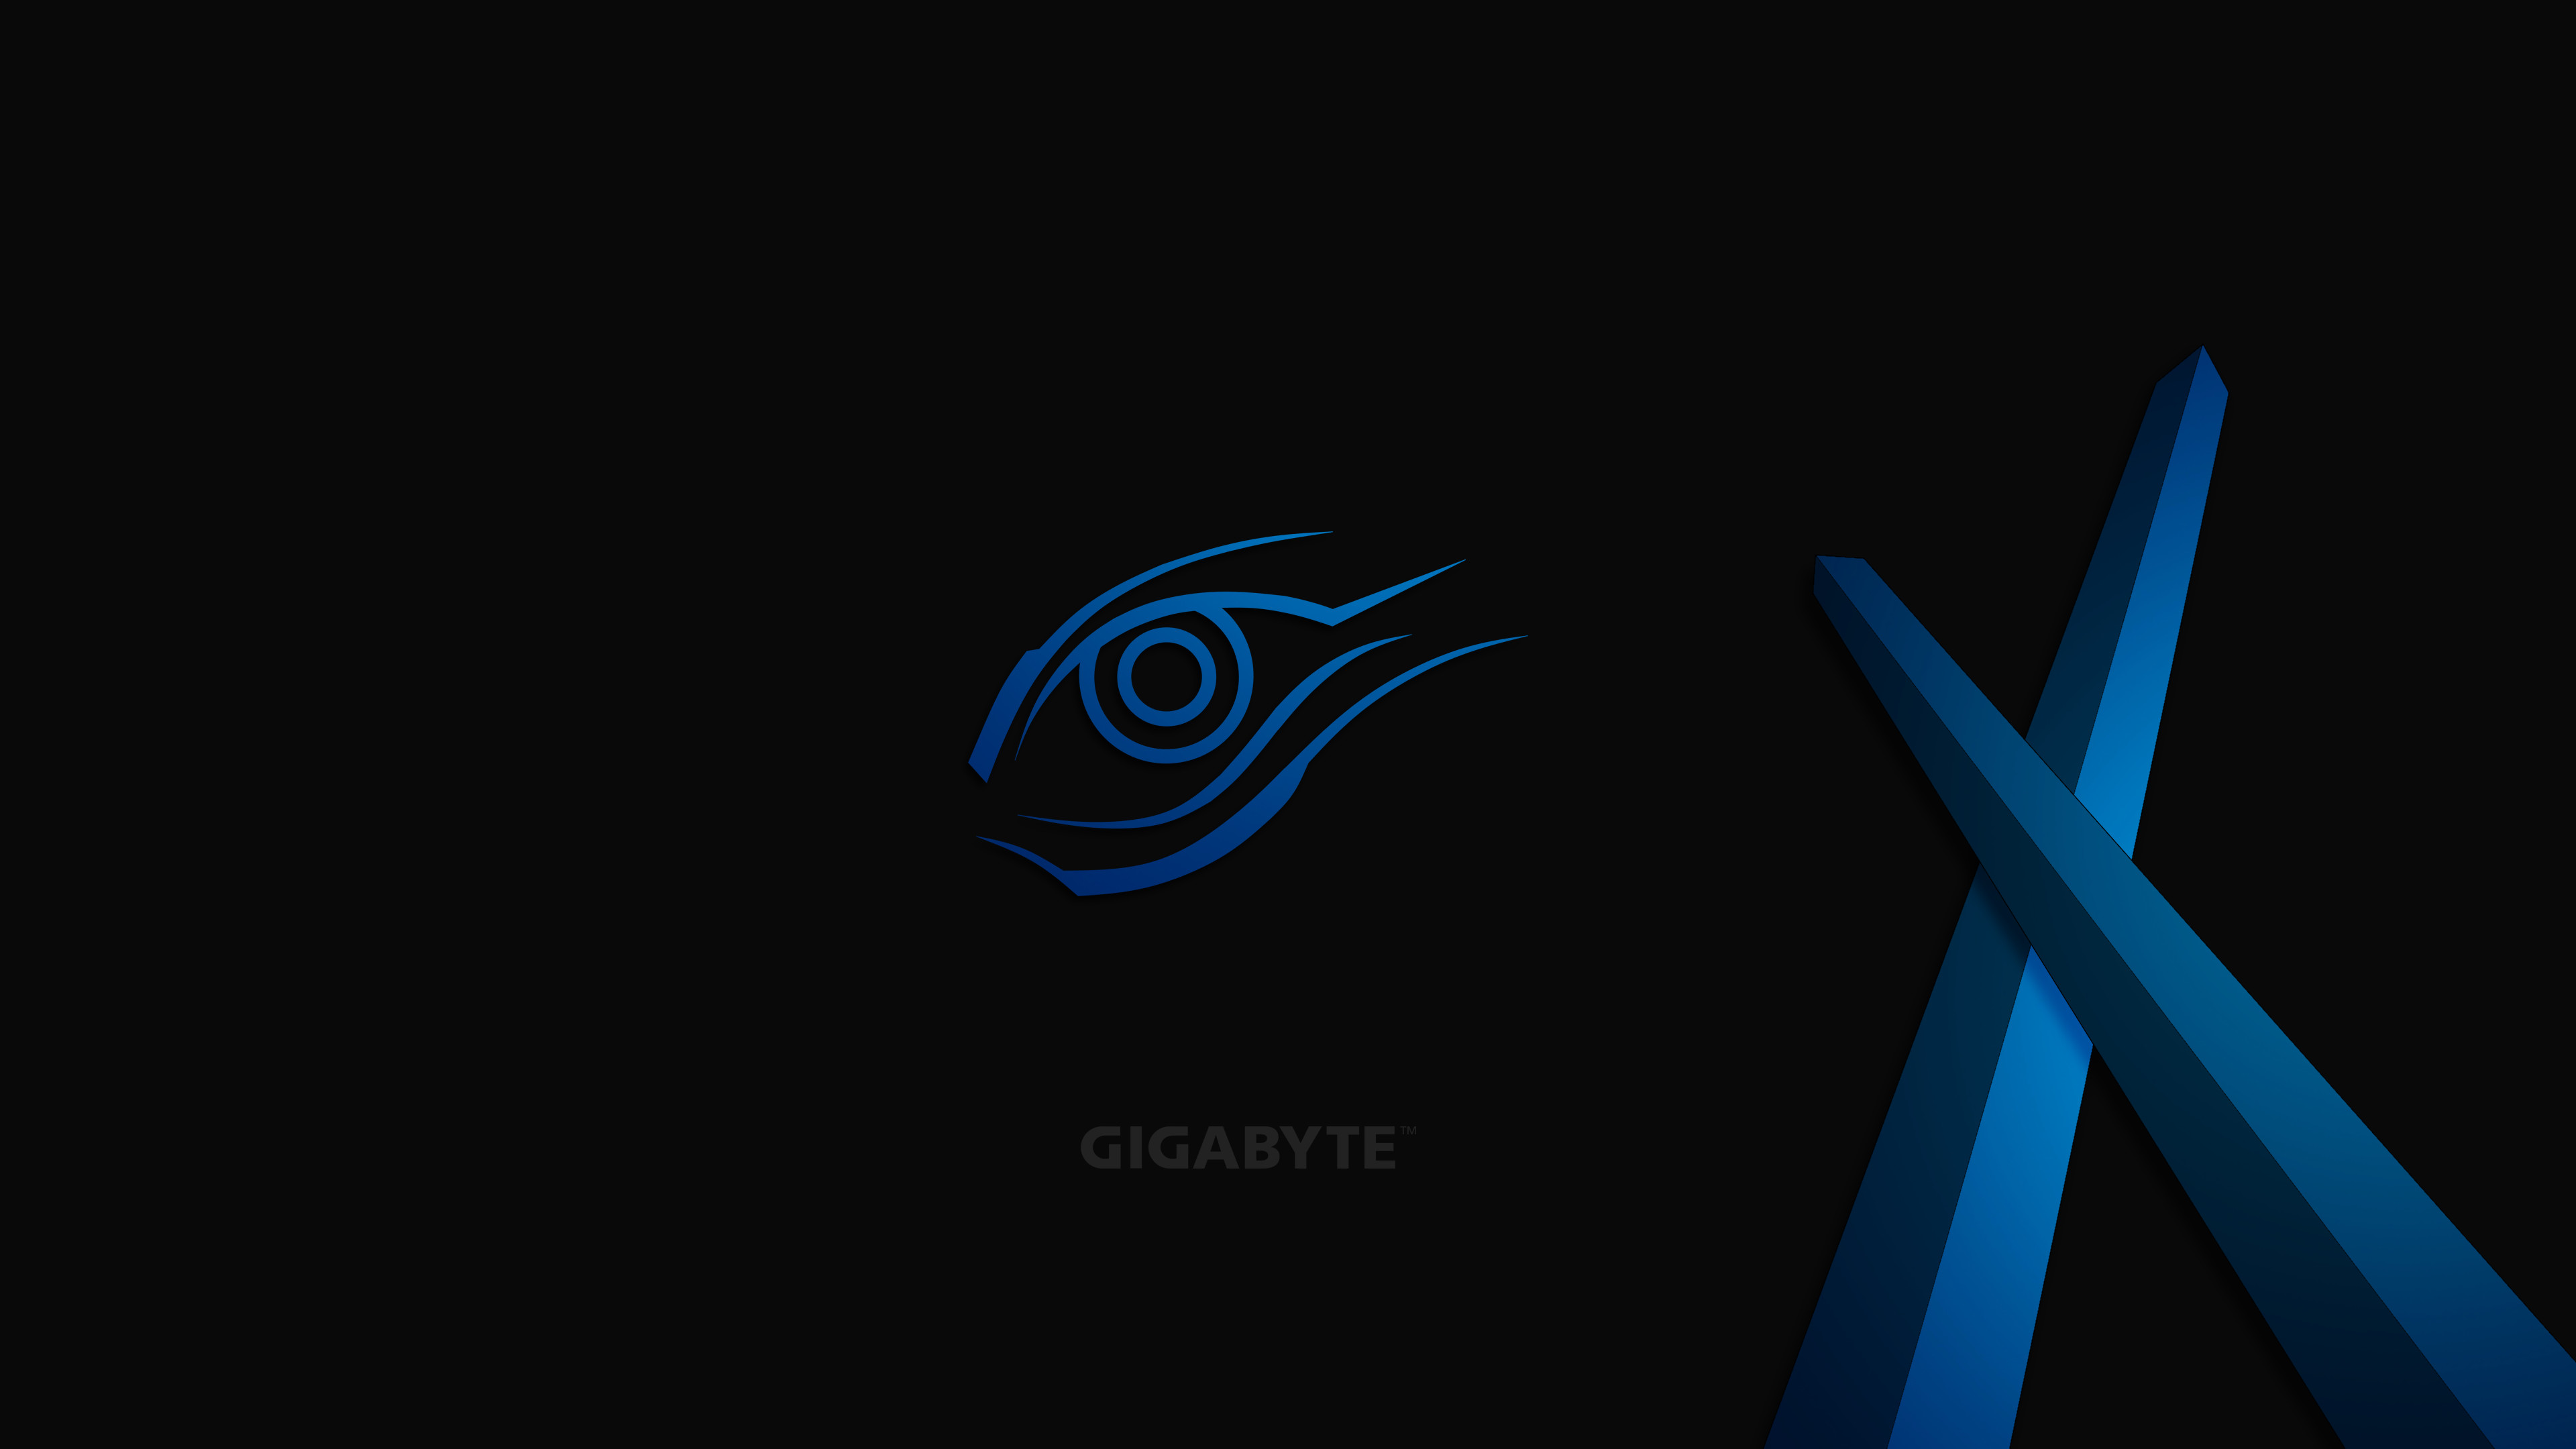 Gigabyte Wallpapers Widescreen 77 Images